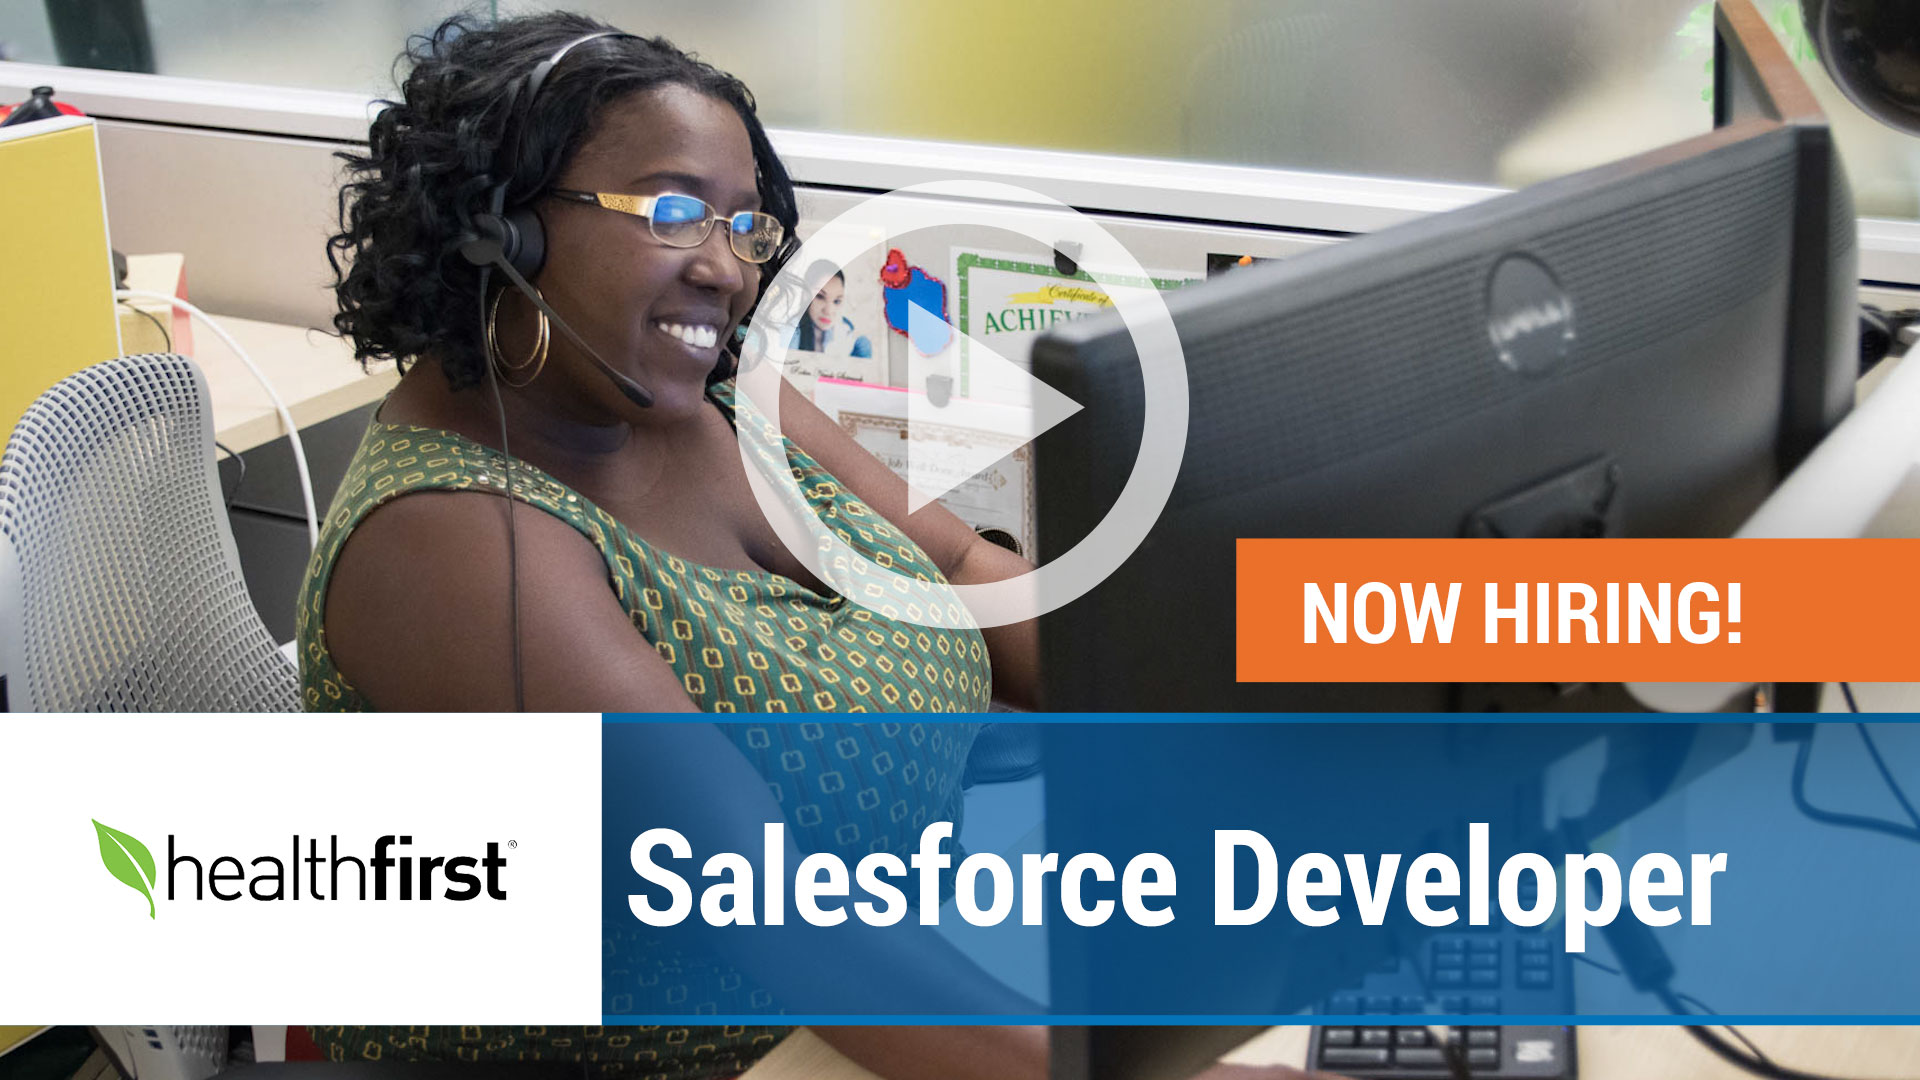 Watch our careers video for available job opening Salesforce Developer in New York, NY.  USA